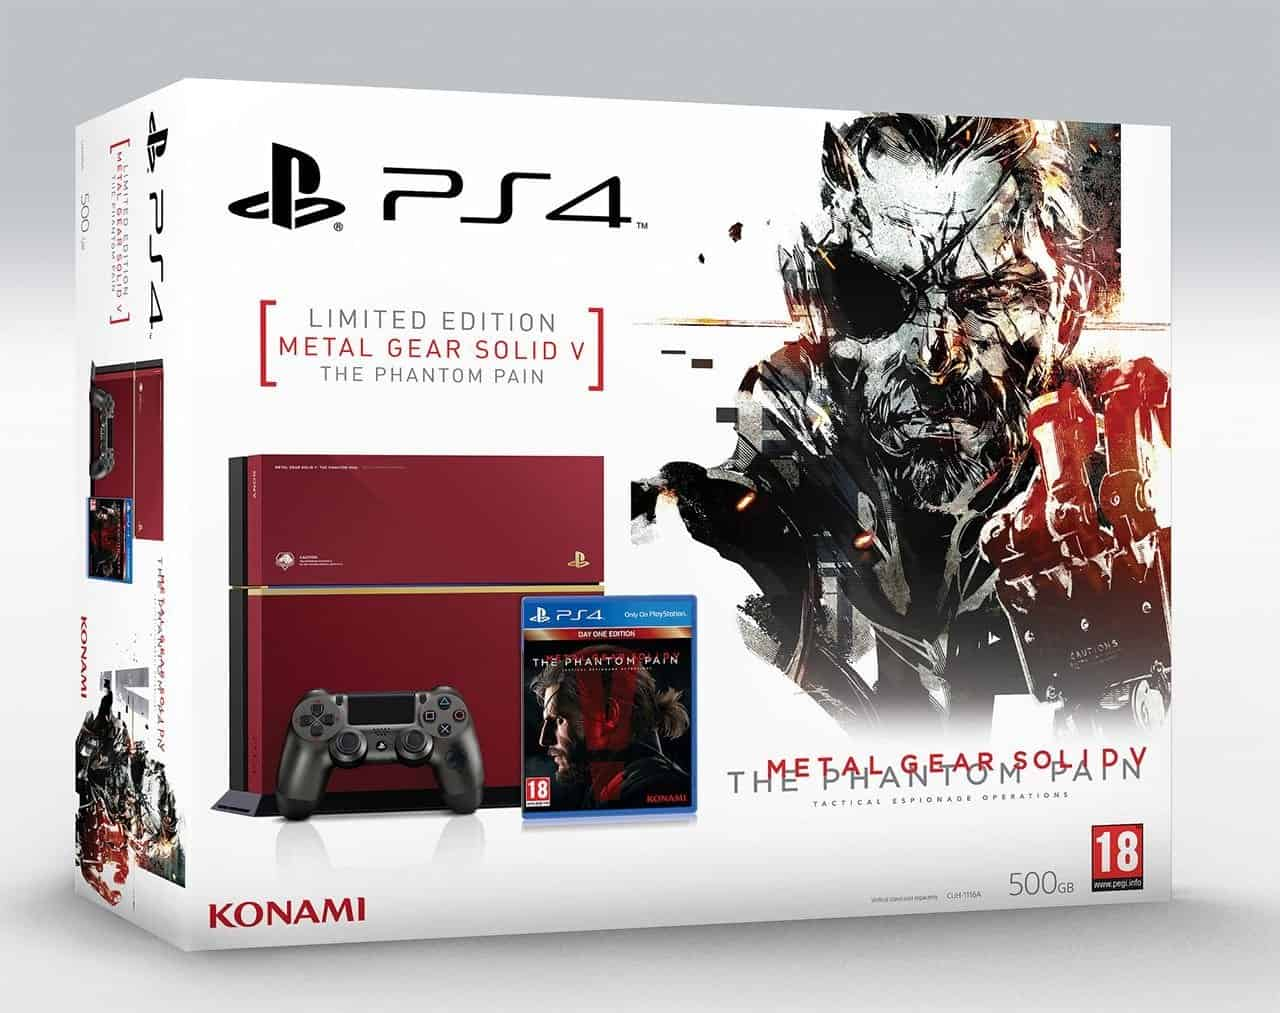 PS4 MGSV Bundle